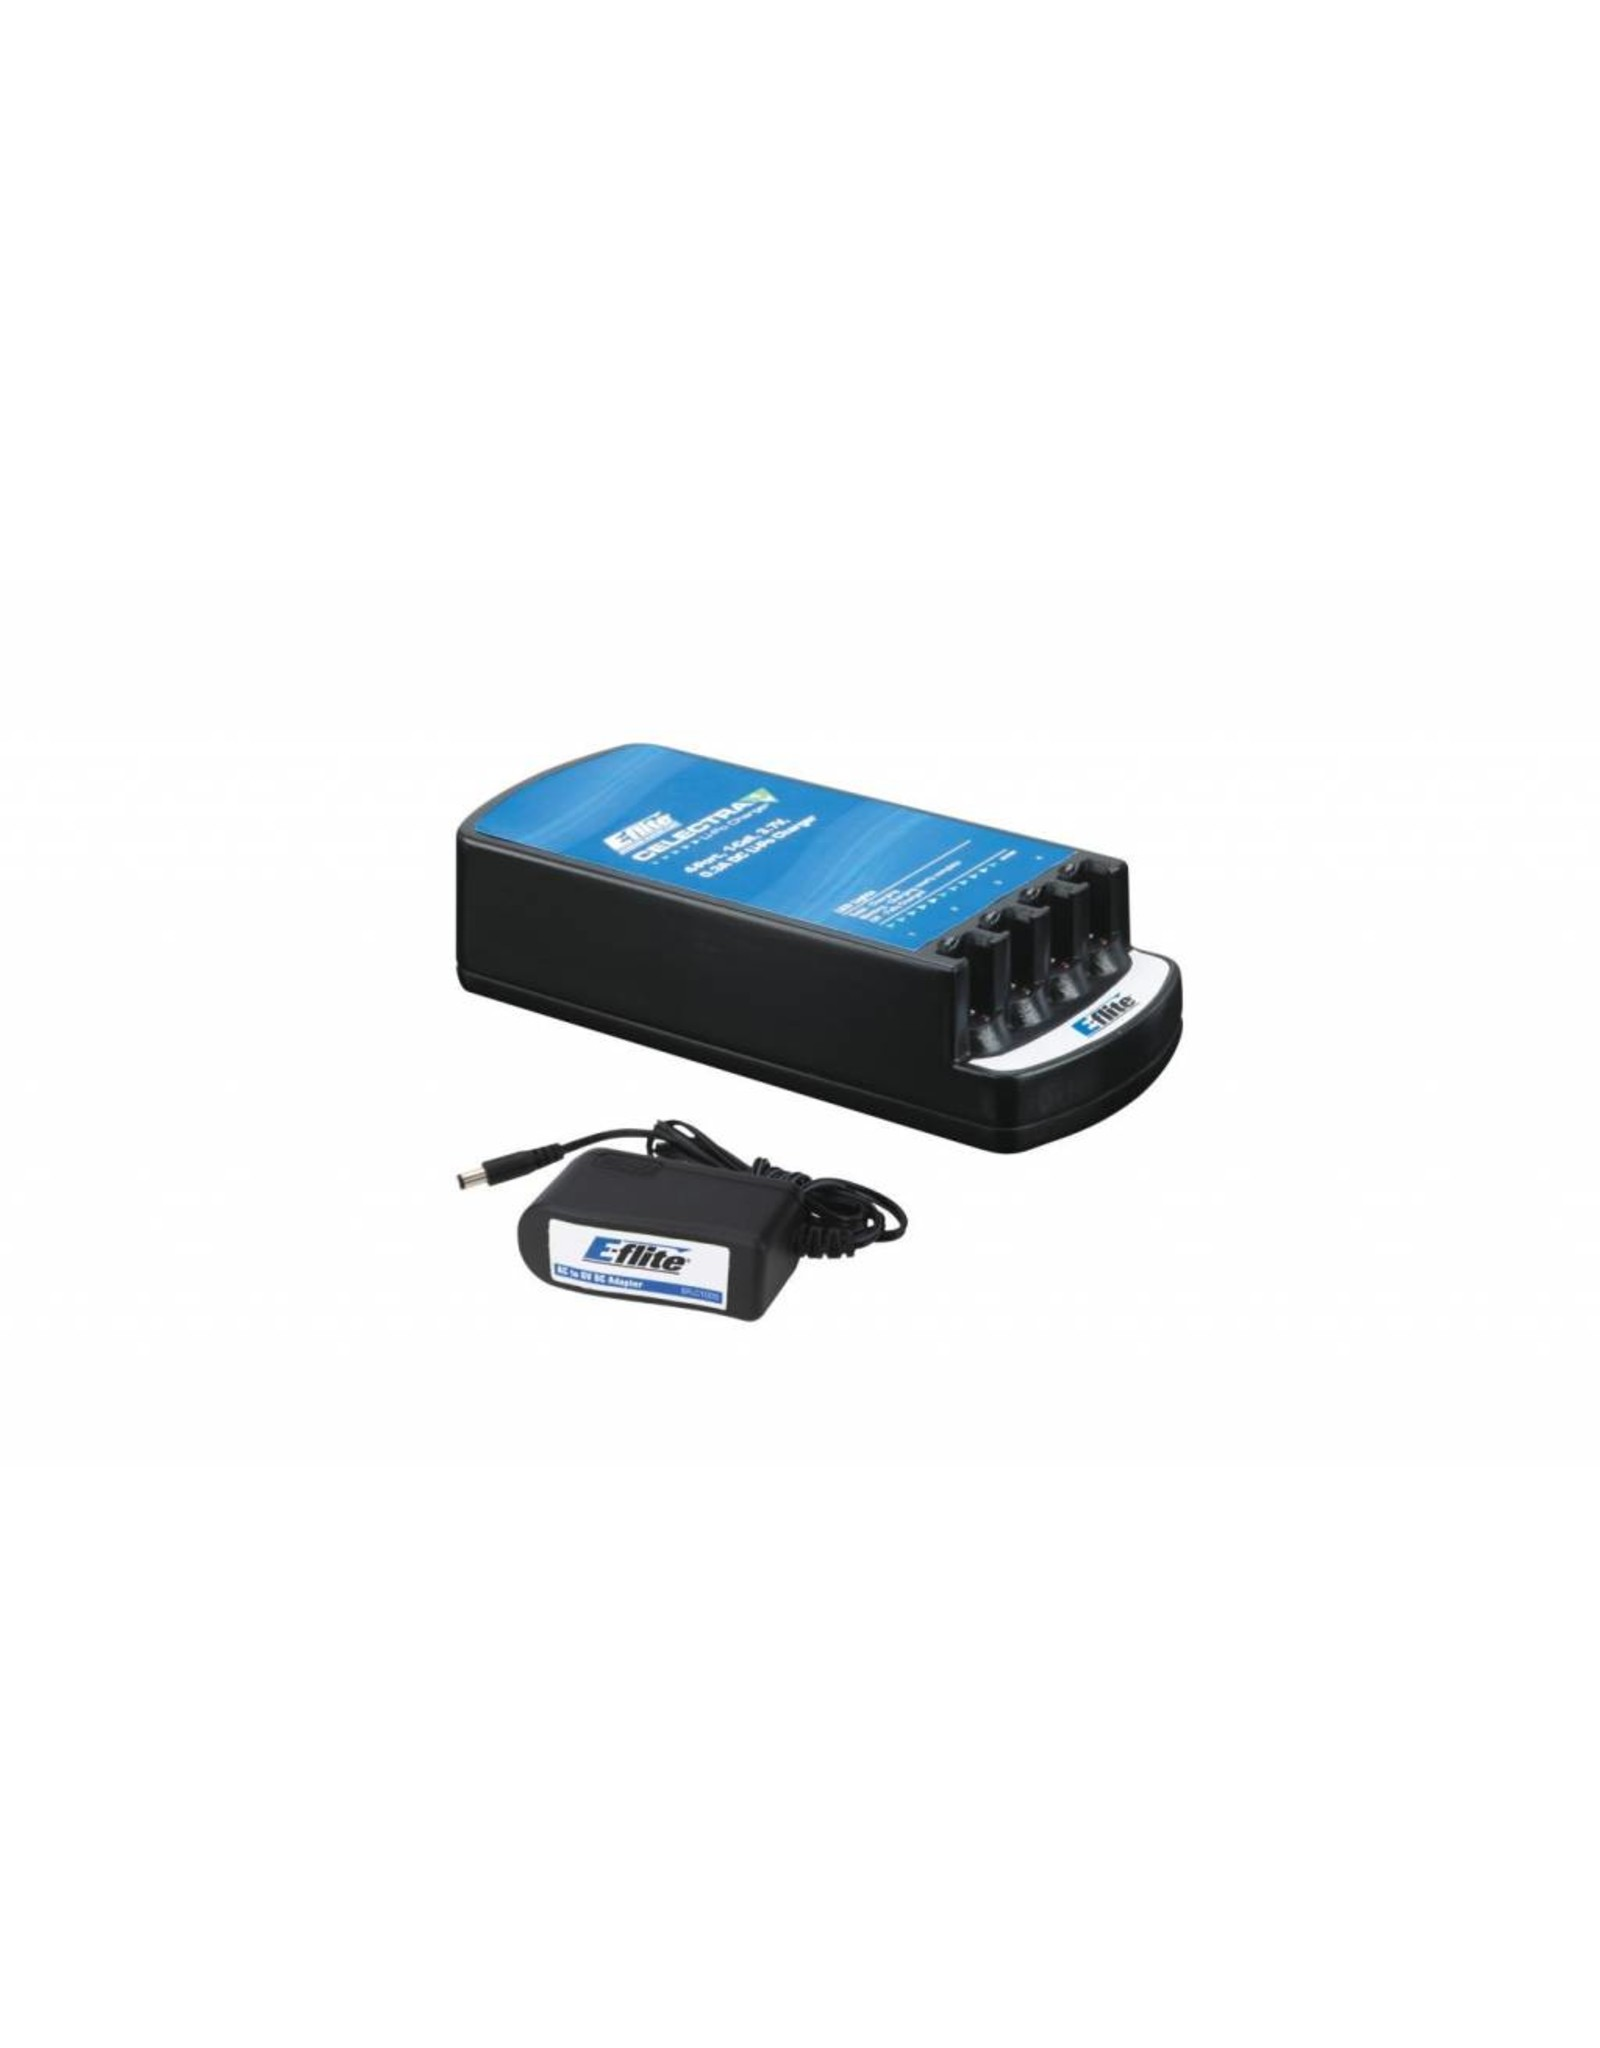 Eflite Celectra 4-Port Charger with AC Adapter Combo